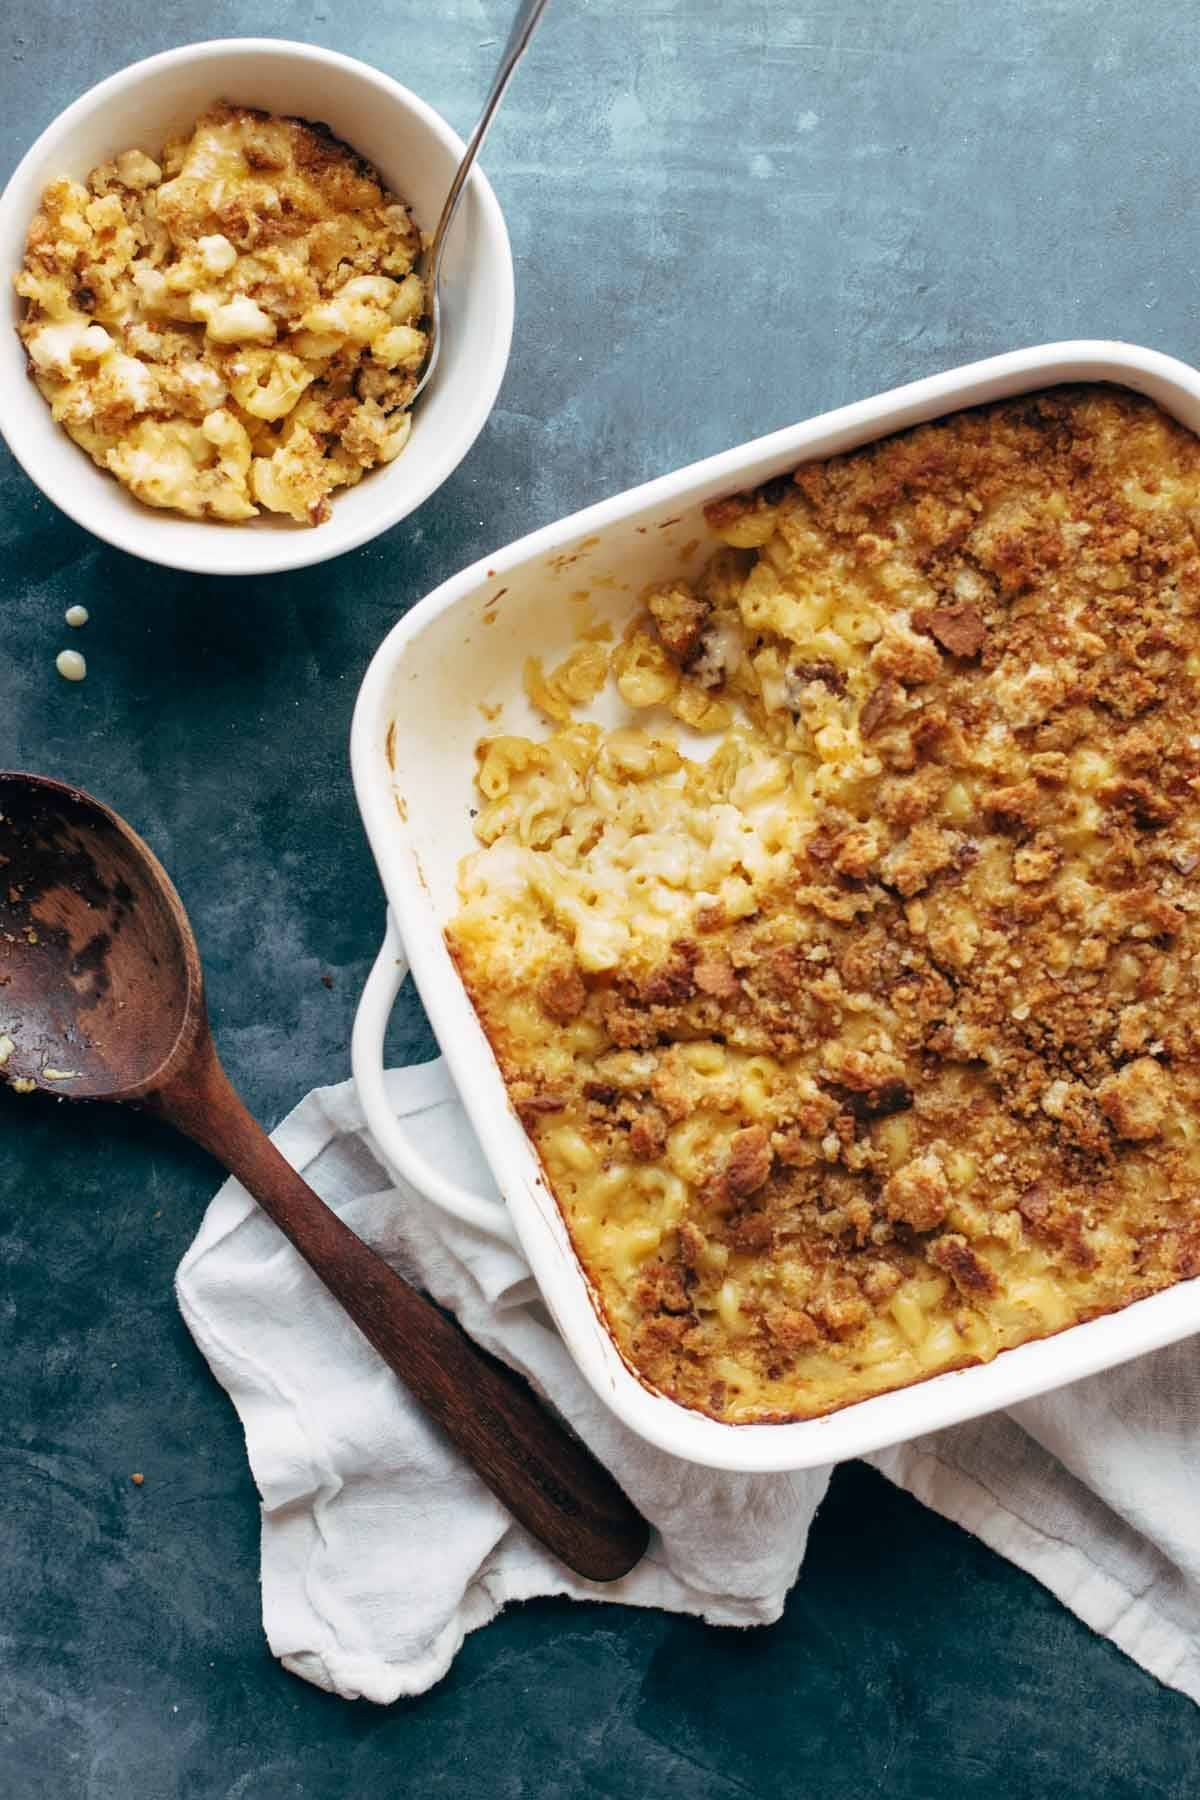 Baked Mac and Cheese in a dish with a wooden spoon and a bowl of mac and cheese on the side